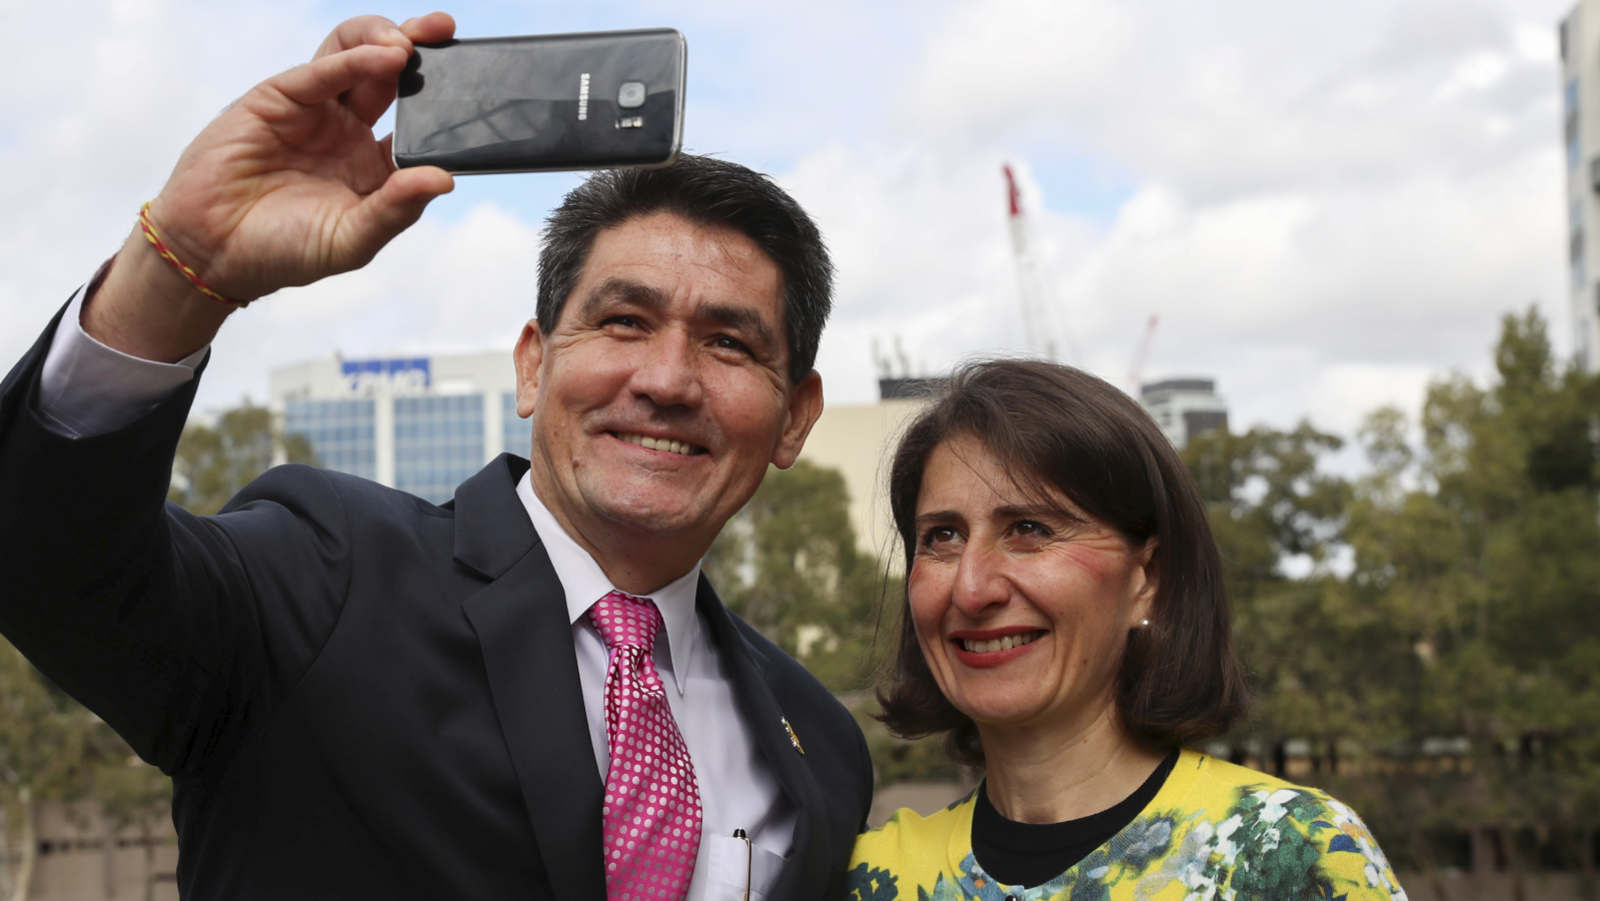 The Member for Parramatta, Geoff Lee, takes a selfie with Premier Gladys Berejiklian.